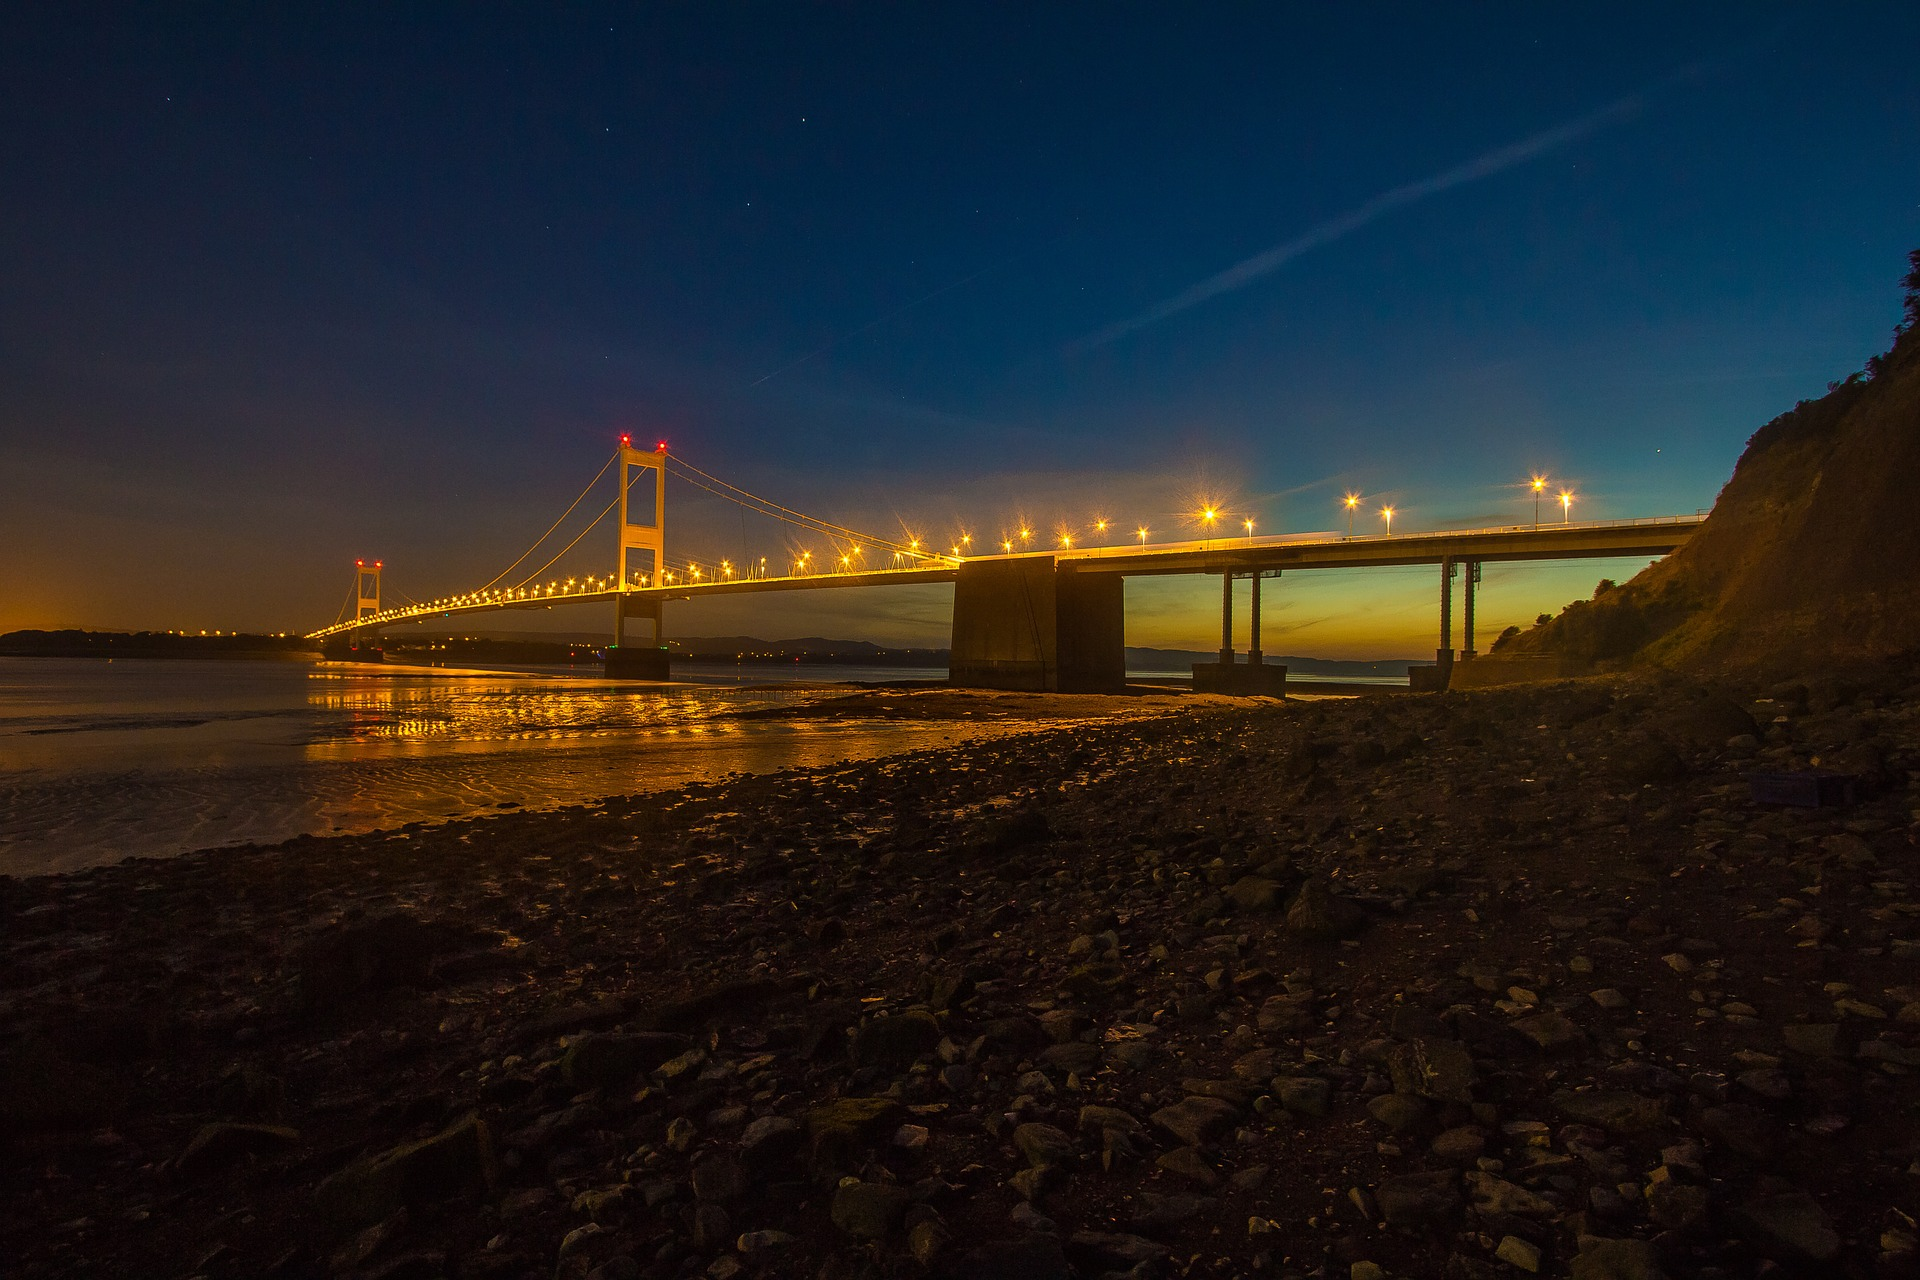 Iconic image of attractive Welsh Severn bridge lit up at night